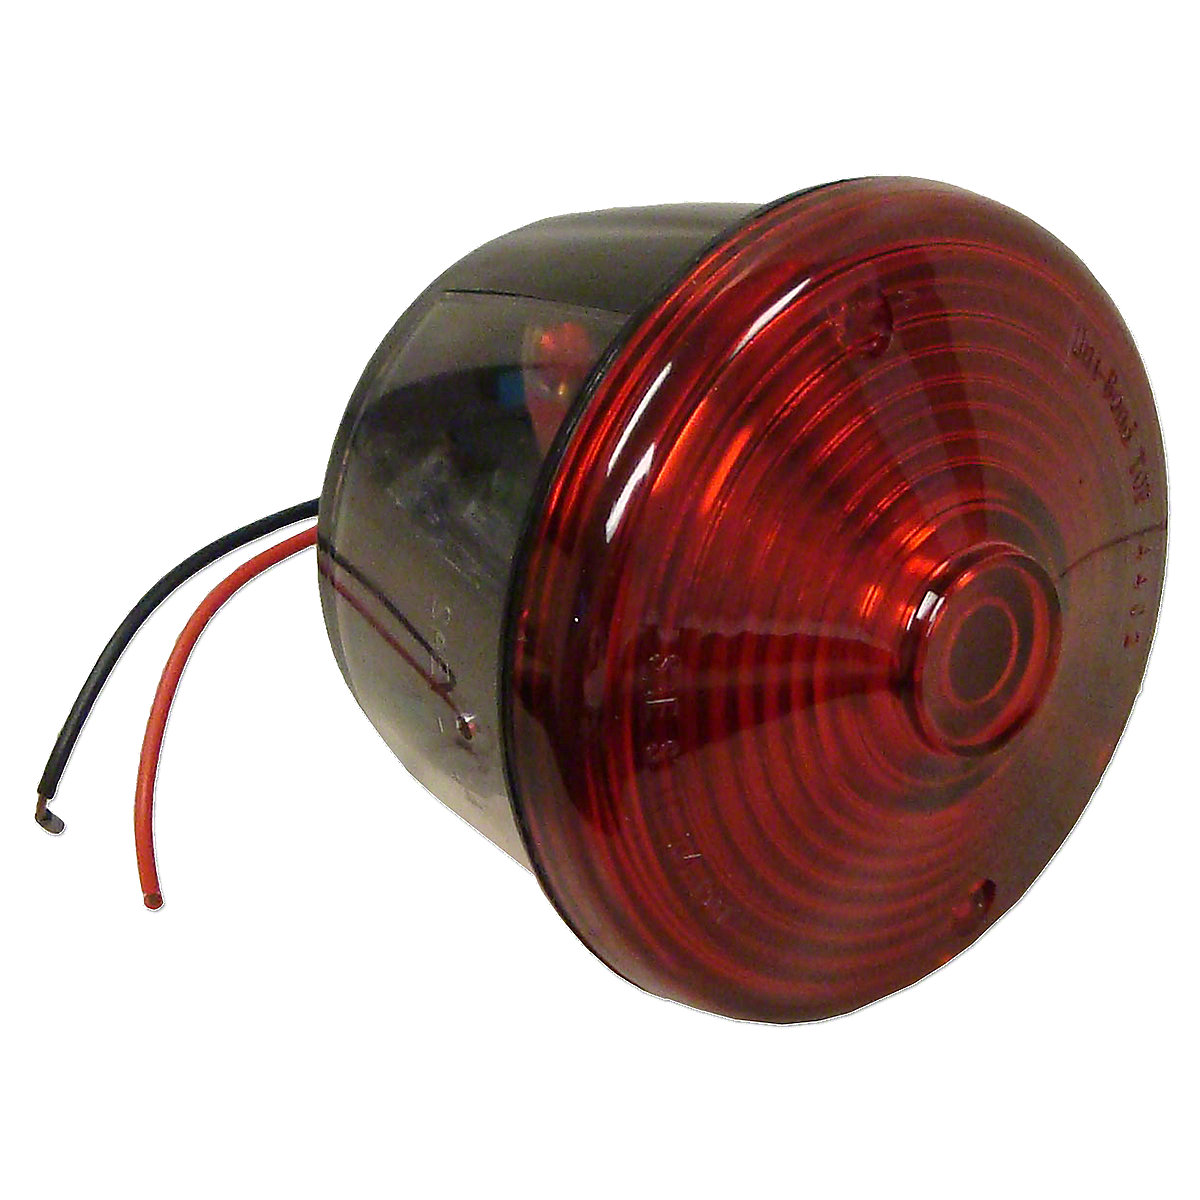 ABC548 12 Volt Round Red Tail Light Assembly With License Lamp Window